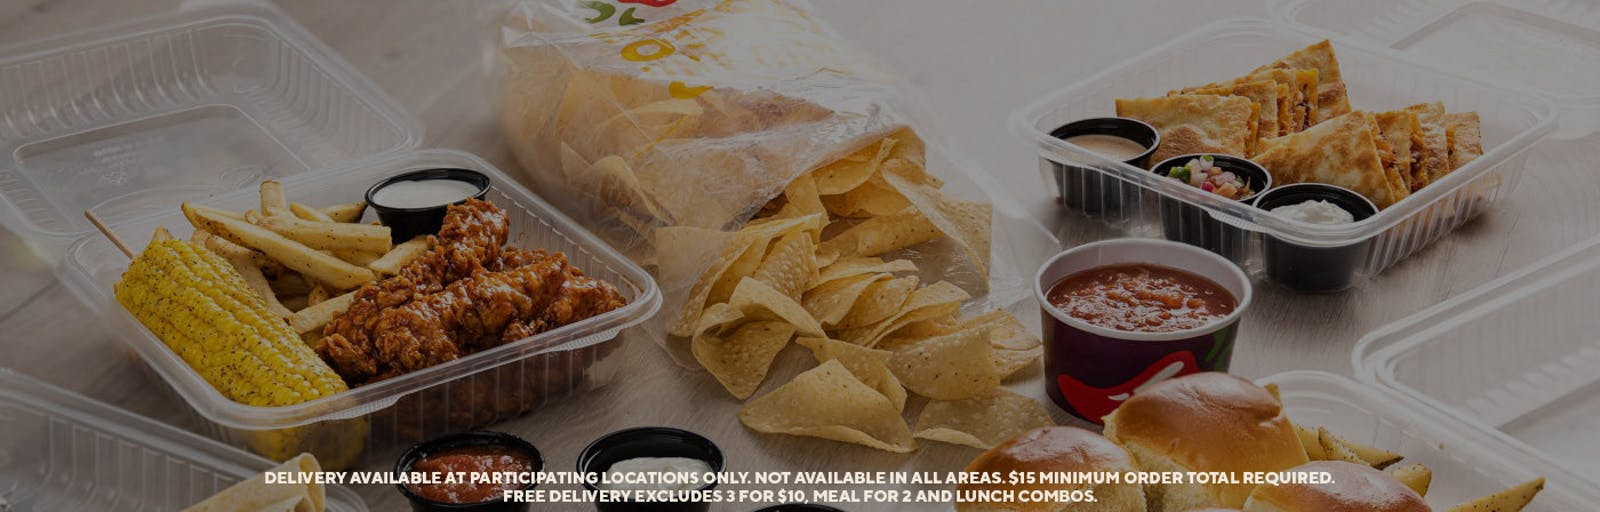 #chilean+food+near+me+delivery Chili's Grill & Bar - Local ...